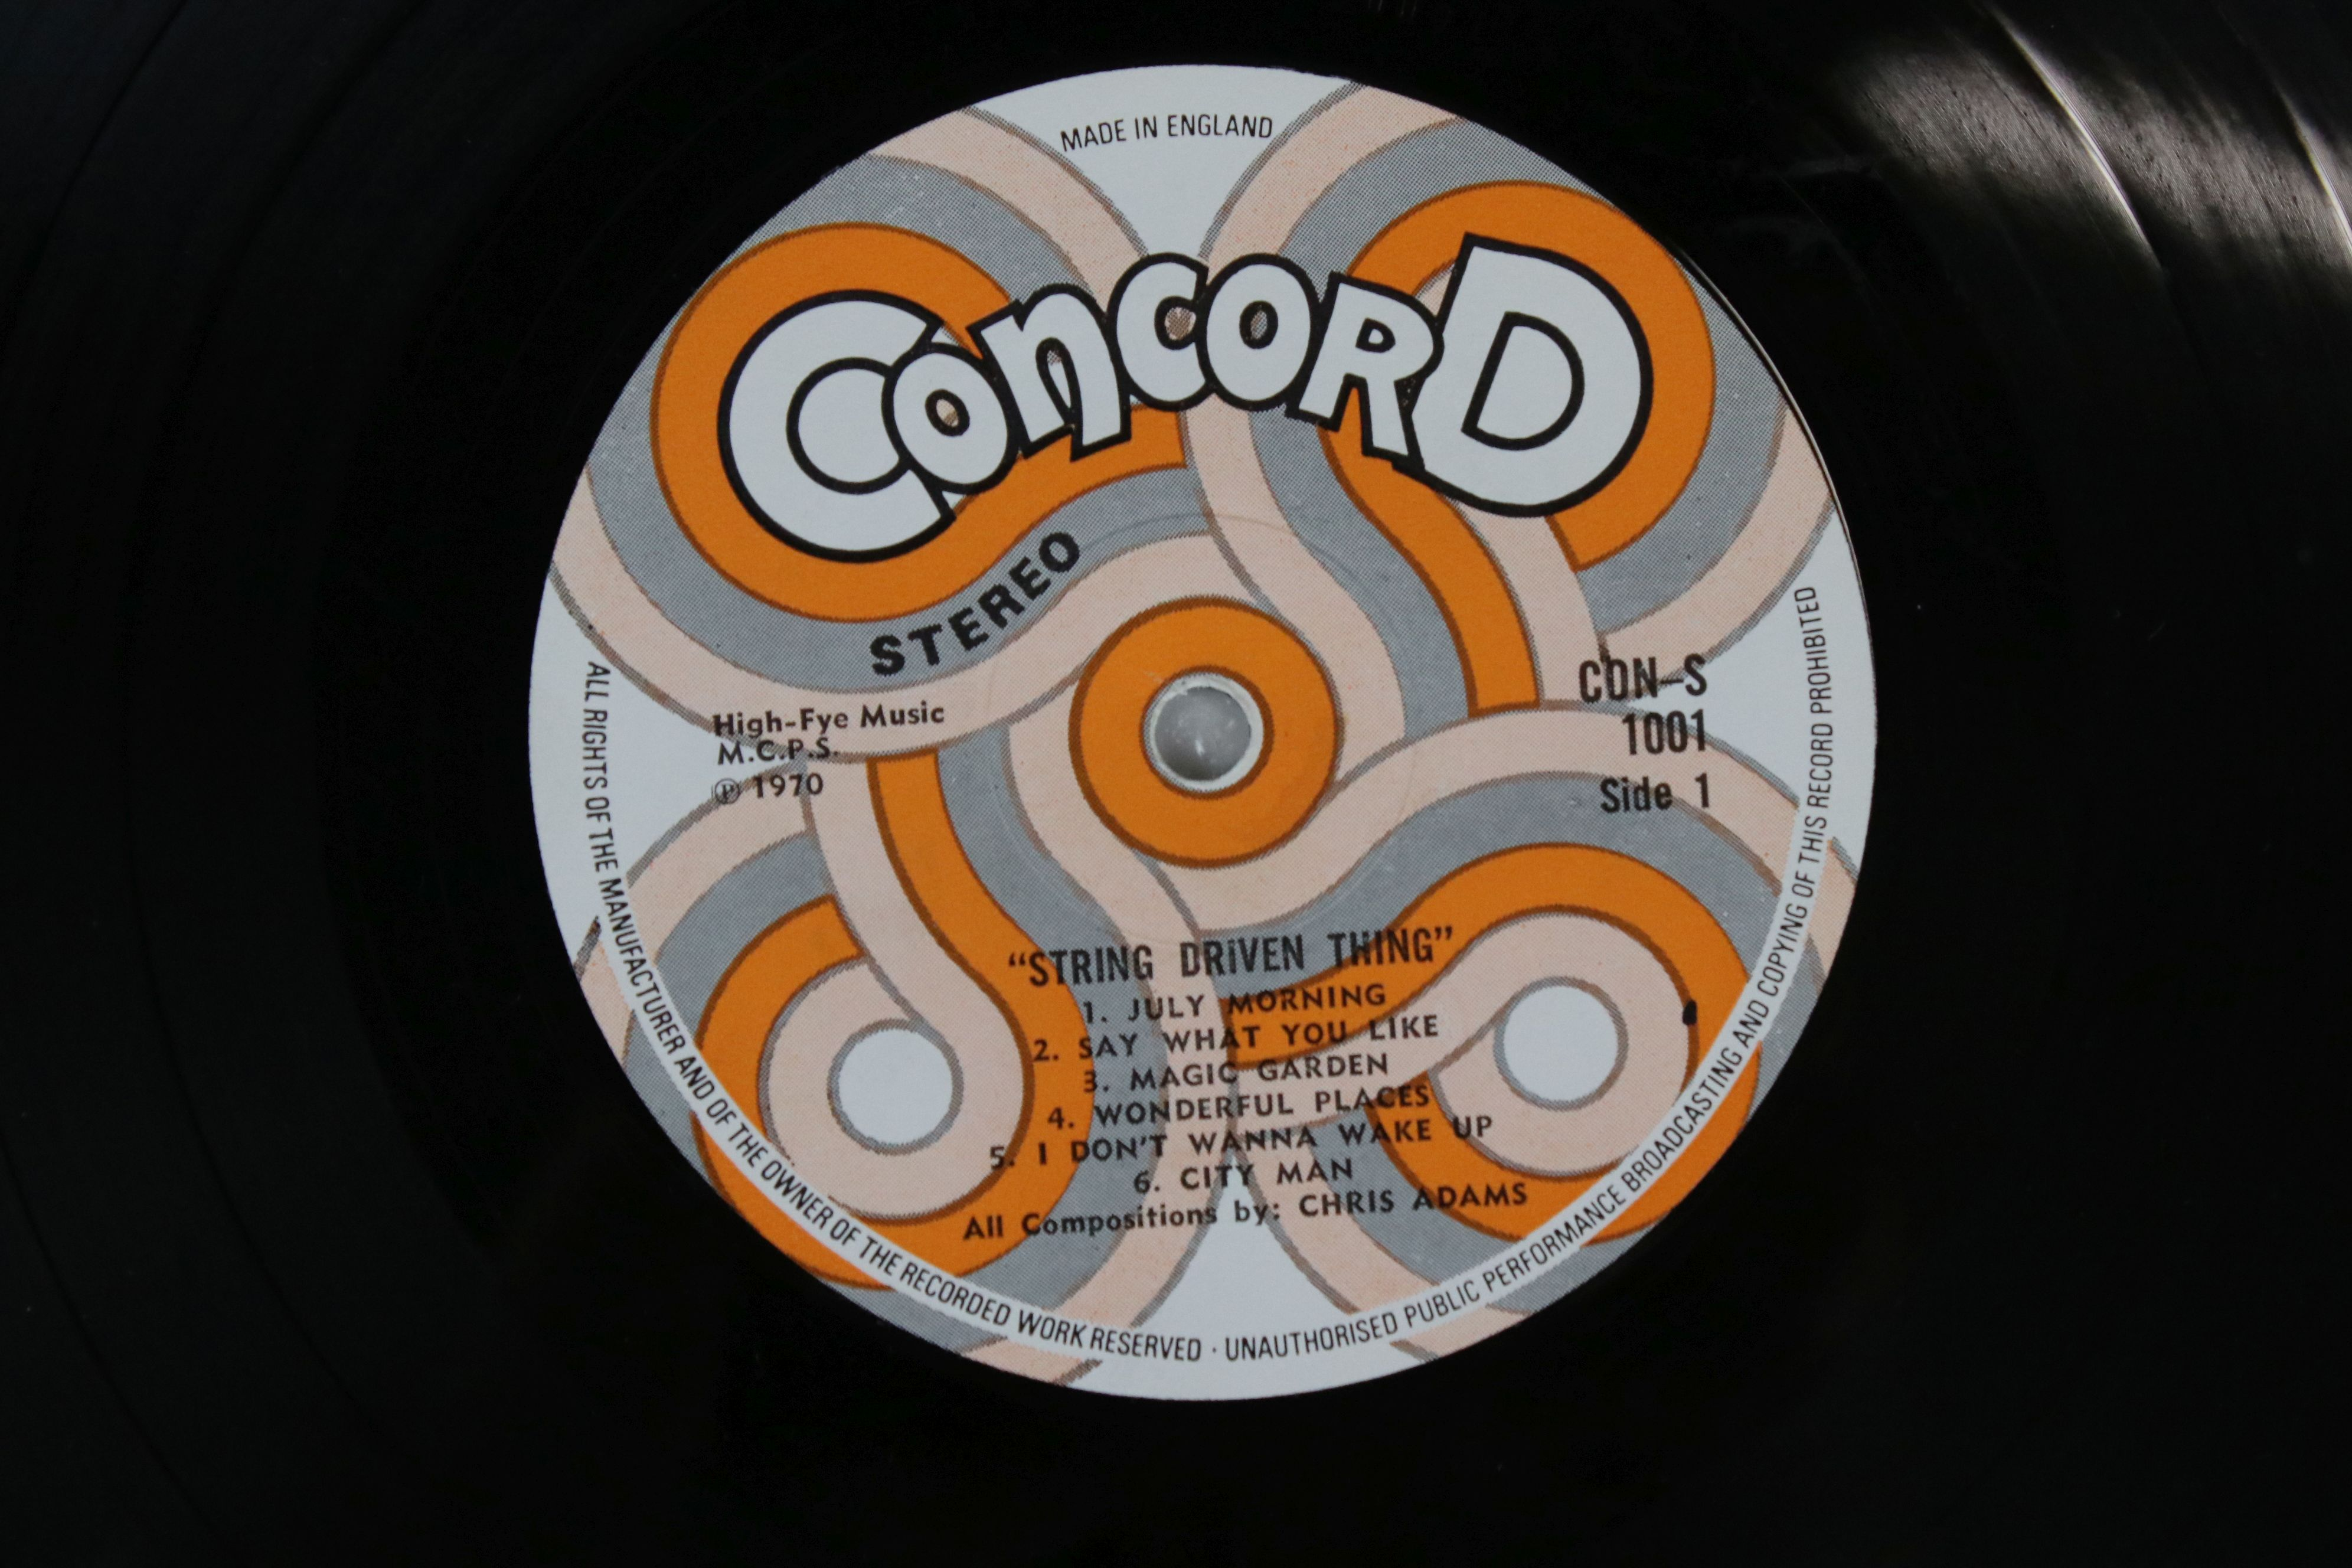 Vinyl - String Driven Thing self titled LP on Concord CON1001 Stereo, first album for the Concorde - Image 3 of 4